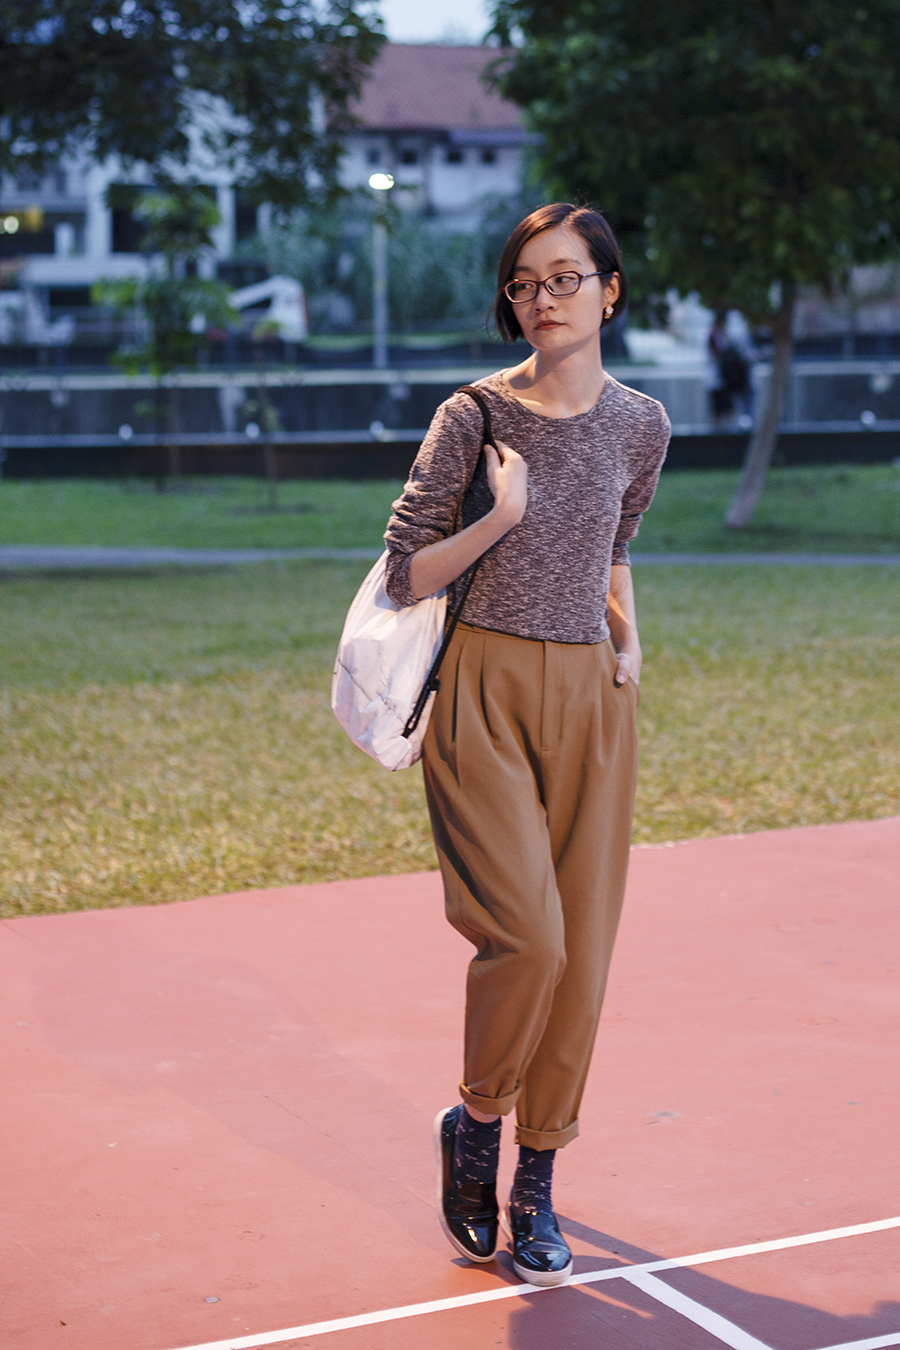 Forever 21 heather grey cropped sweater, GU pants, Zalora shoes, Firmoo glasses, Snupped drawstring bag.